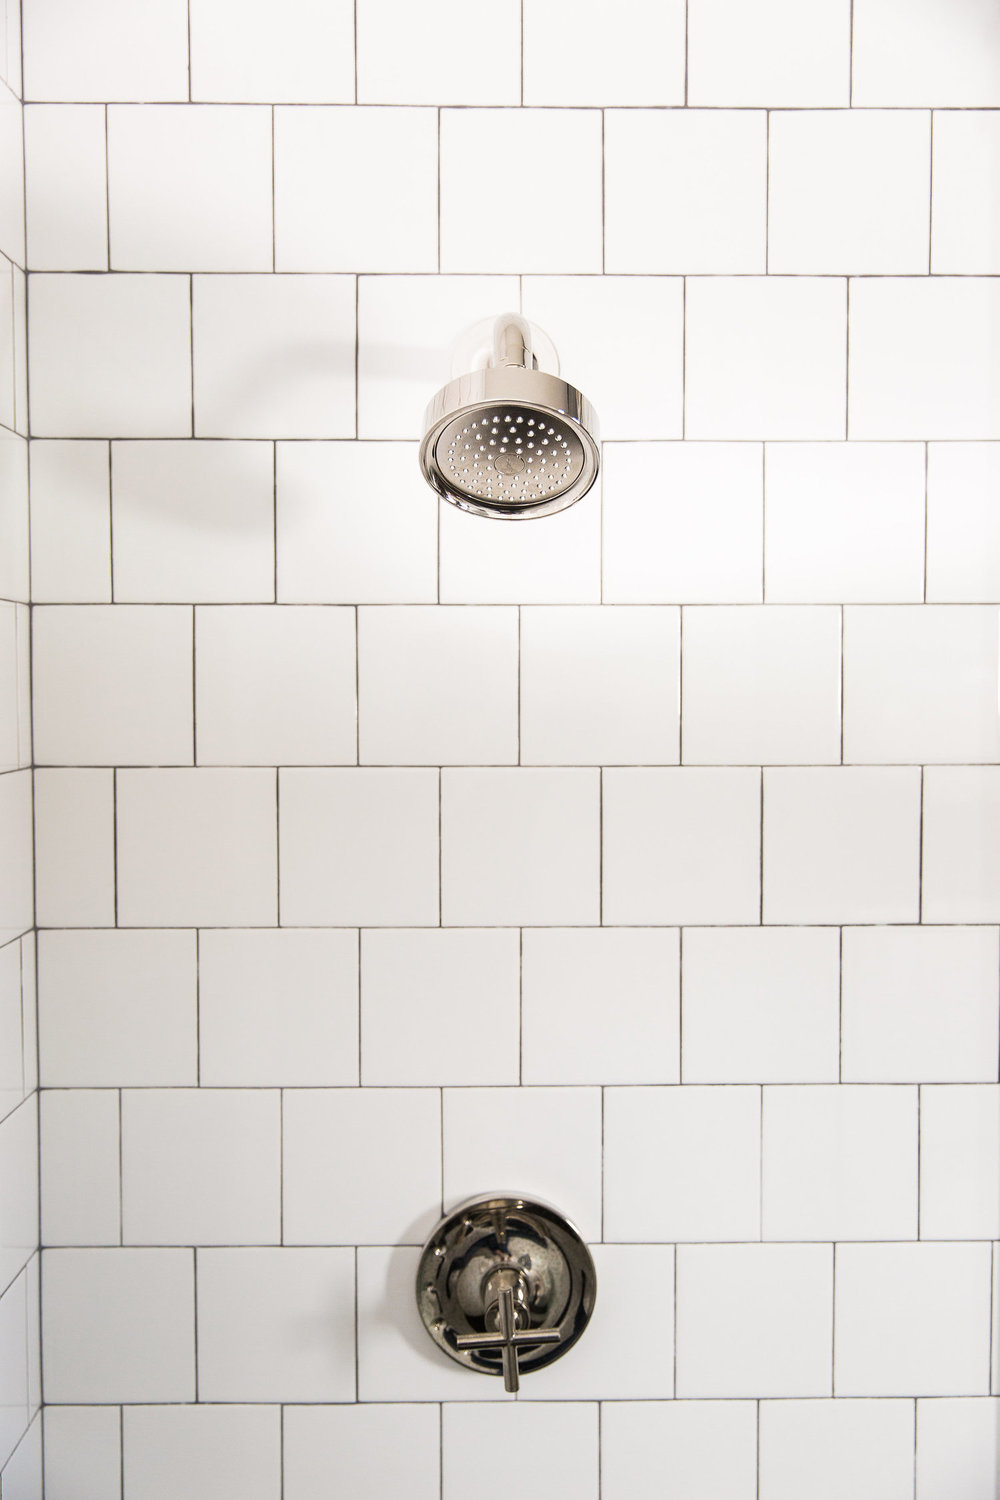 Square+tile+with+dark+grout+||+Studio+McGee.jpg